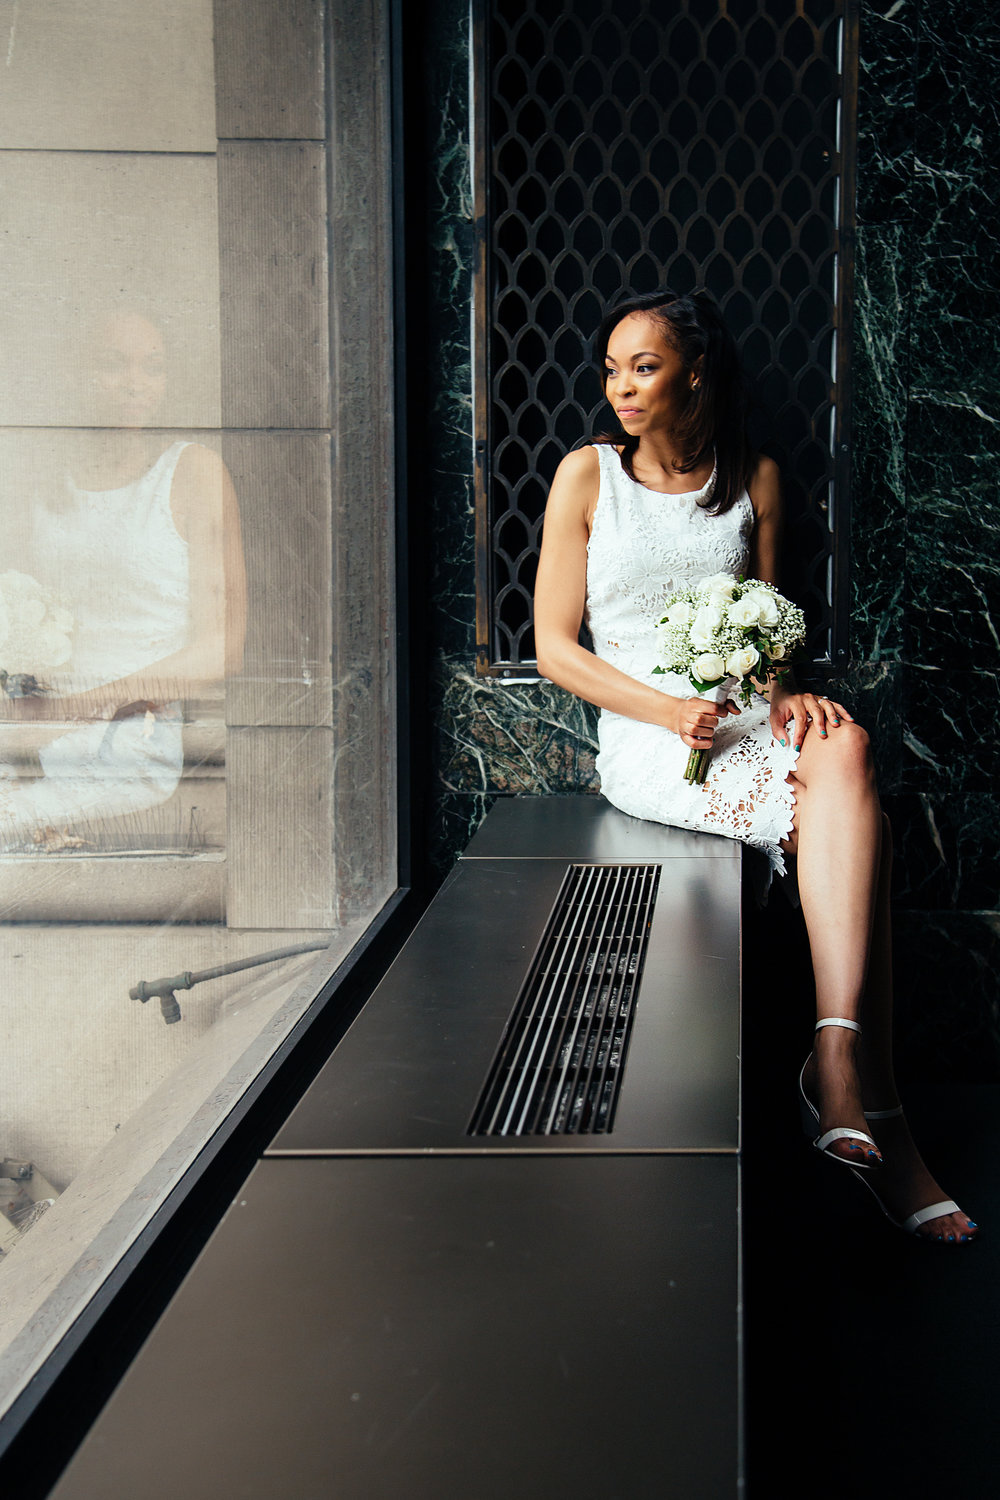 chicago_elopement_tony_brittany-24.jpg